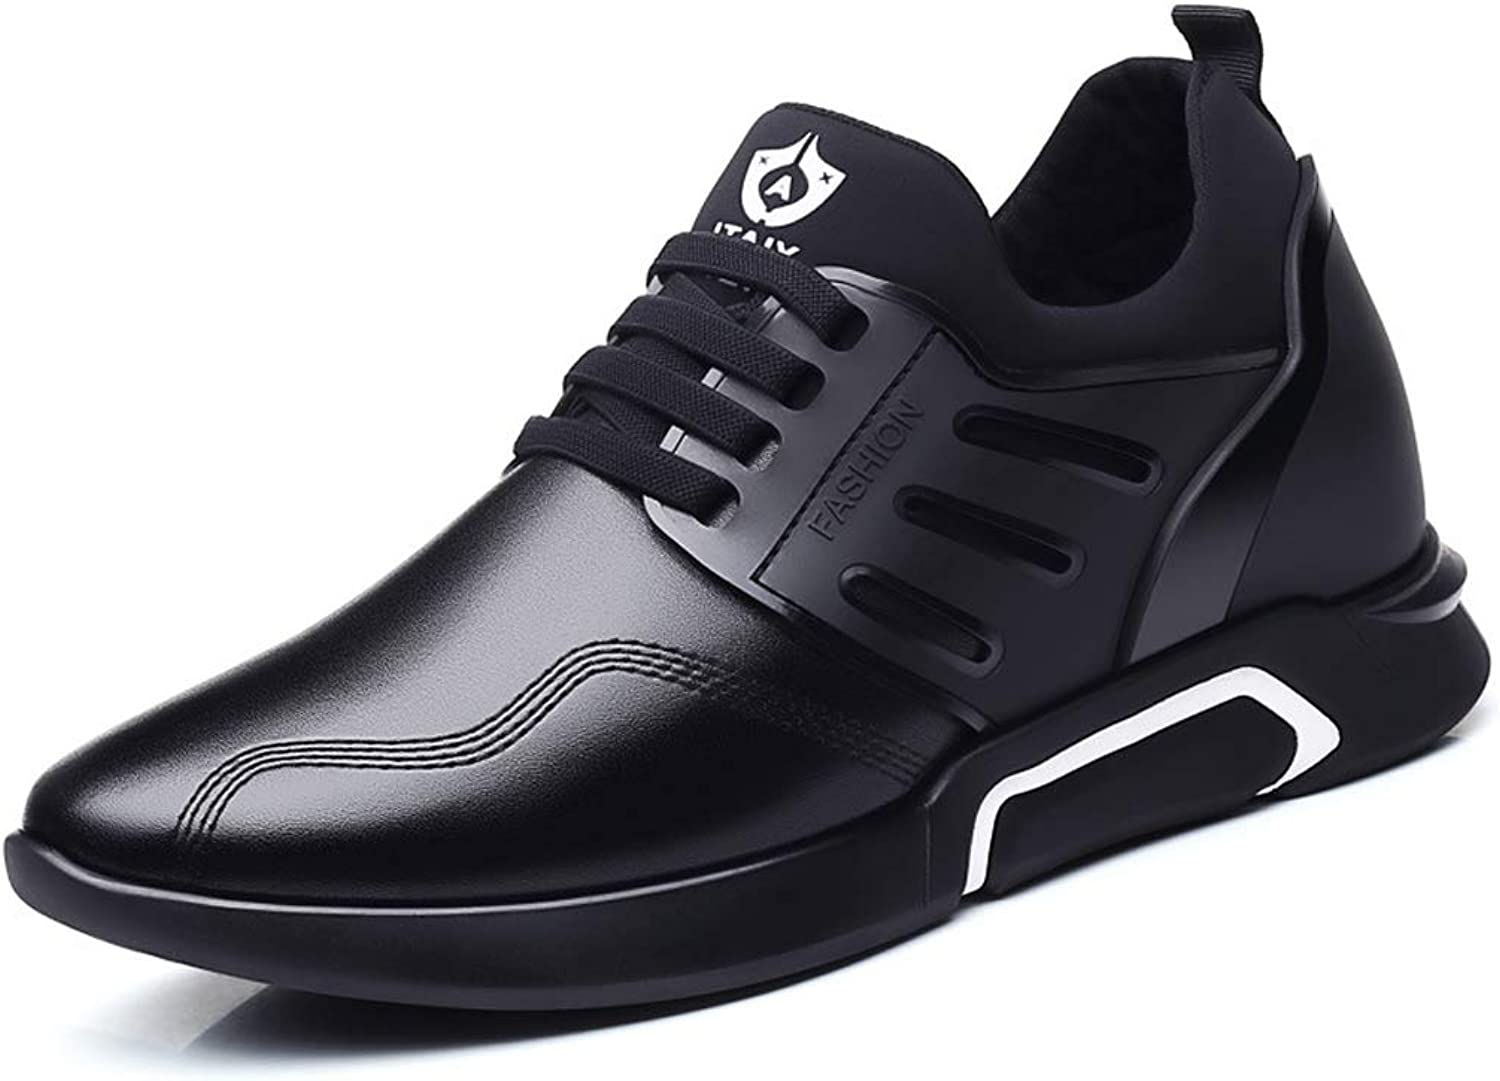 TYX-SS Casual Sports Men'S shoes 6CM Increased shoes Oxford shoes Leather Surface Breathable Fashion Men'S shoes